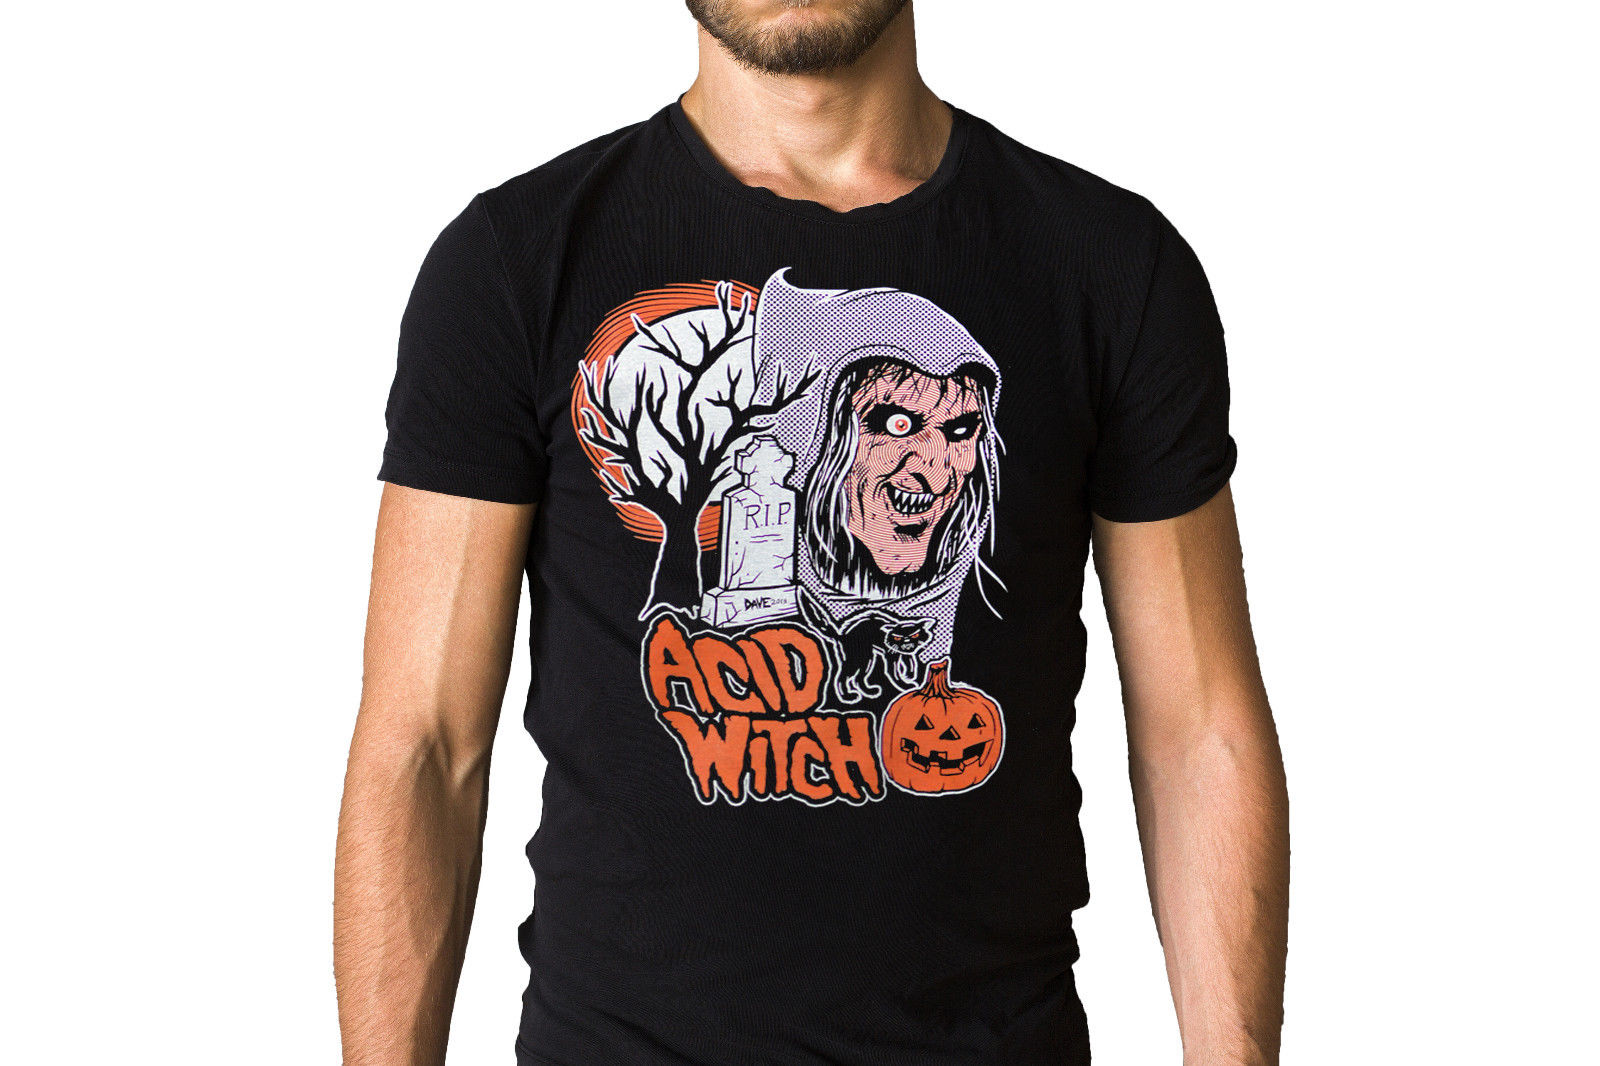 Acid Witch Trick Or Treat Song Halloween Inspired T-Shirt Cotton Low Price Top Tee For Teen Boys